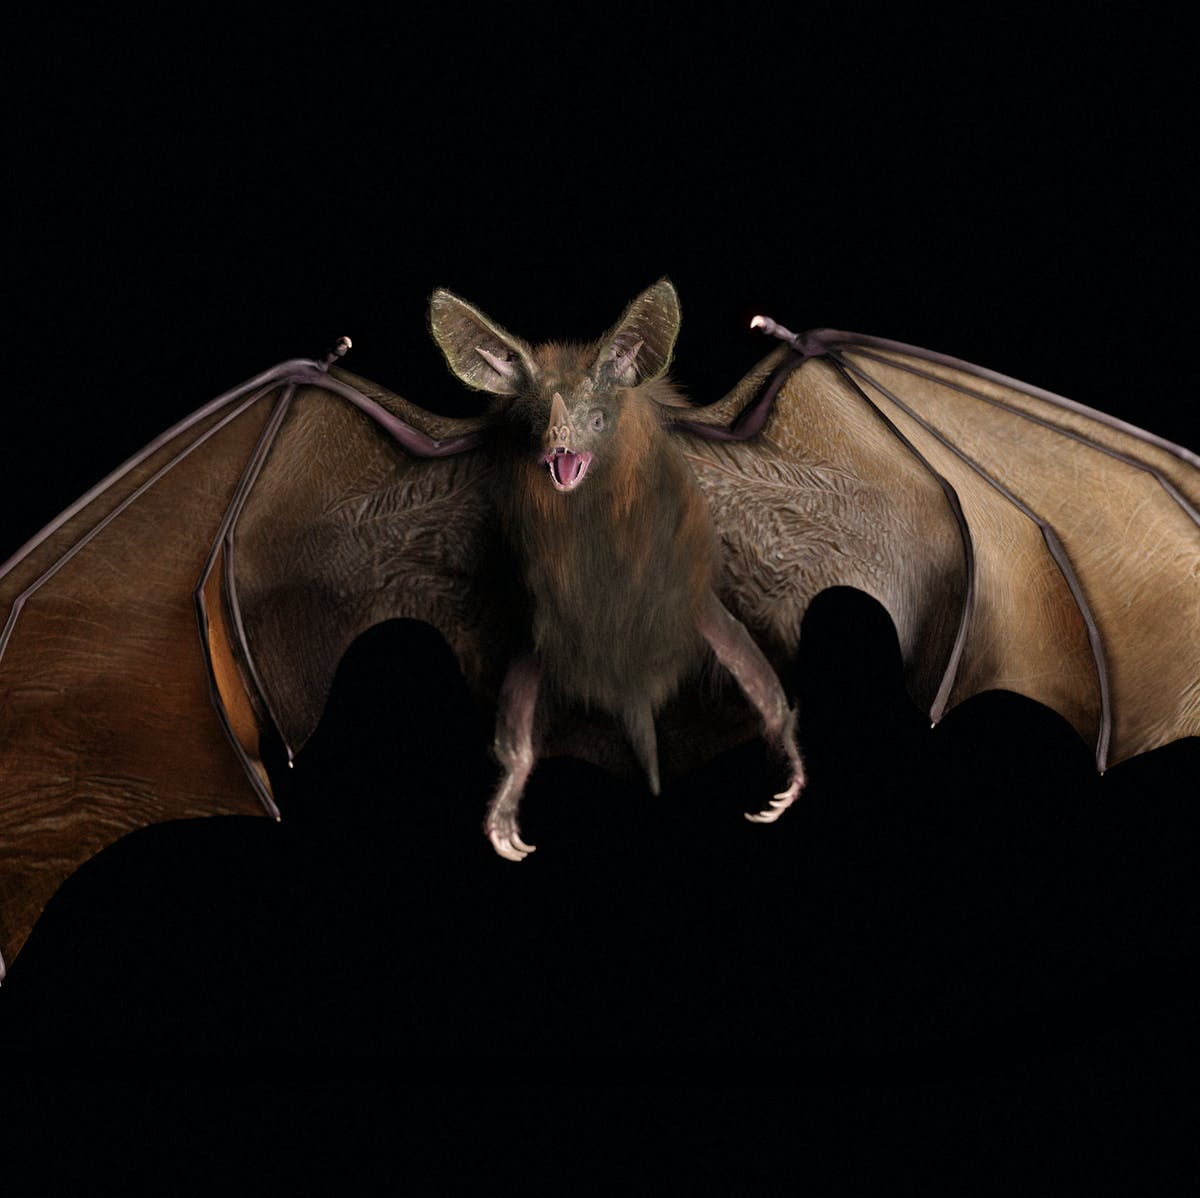 Meet friendly vampire bats: They drink blood, cuddle, and groom fellow bats